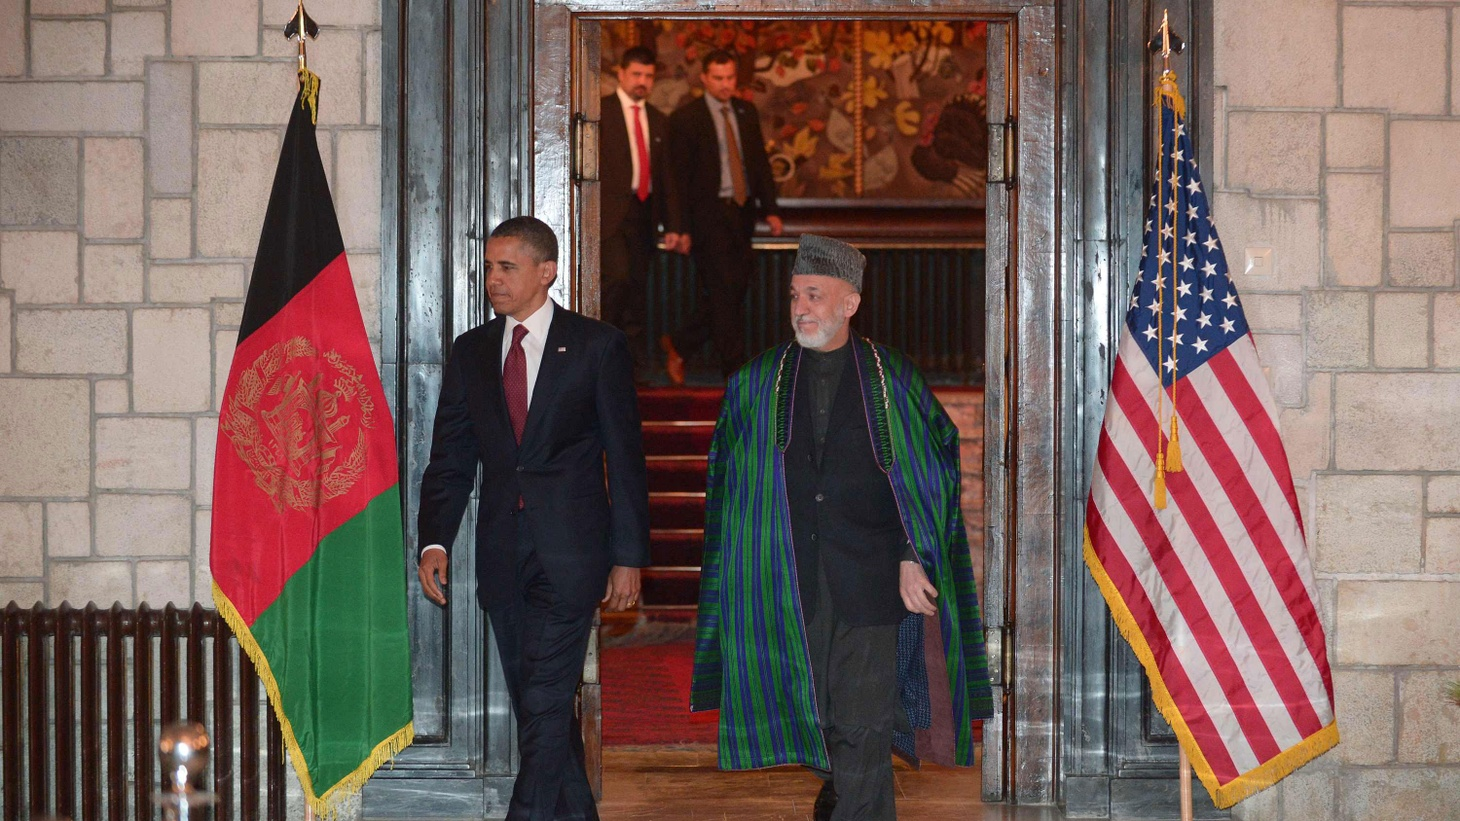 President Obama in a televised address from Afghanistan on the new US-Afghan security agreement that details America's role after the withdrawal of US and NATO troops. 4:30pm